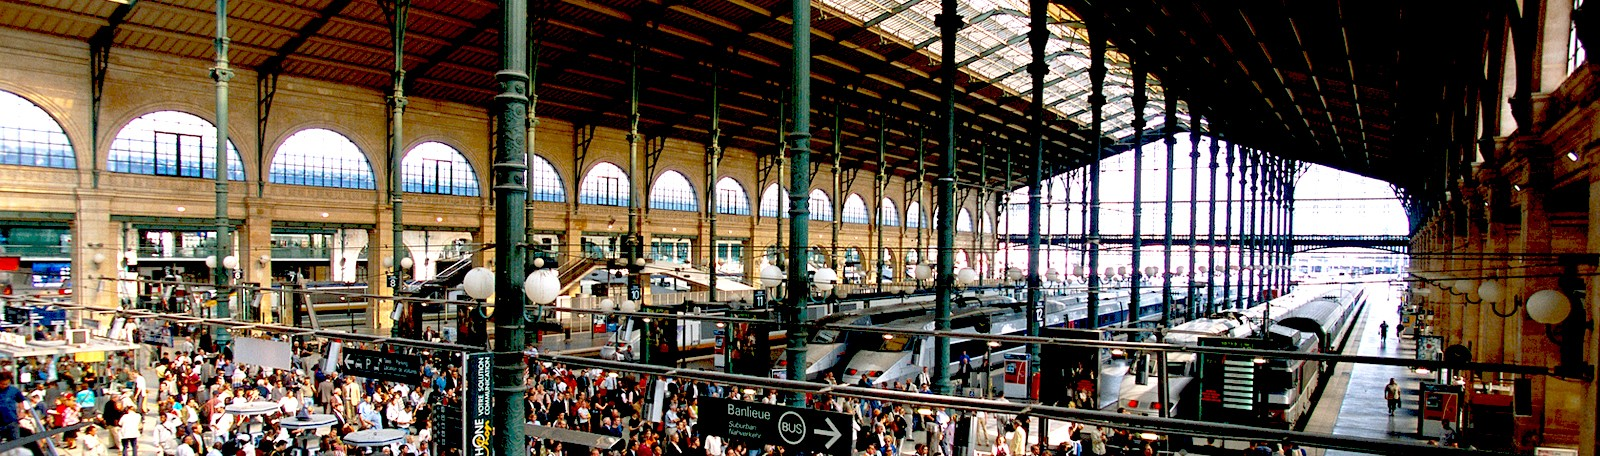 Perrache train station - Stations, public transport - Lyon